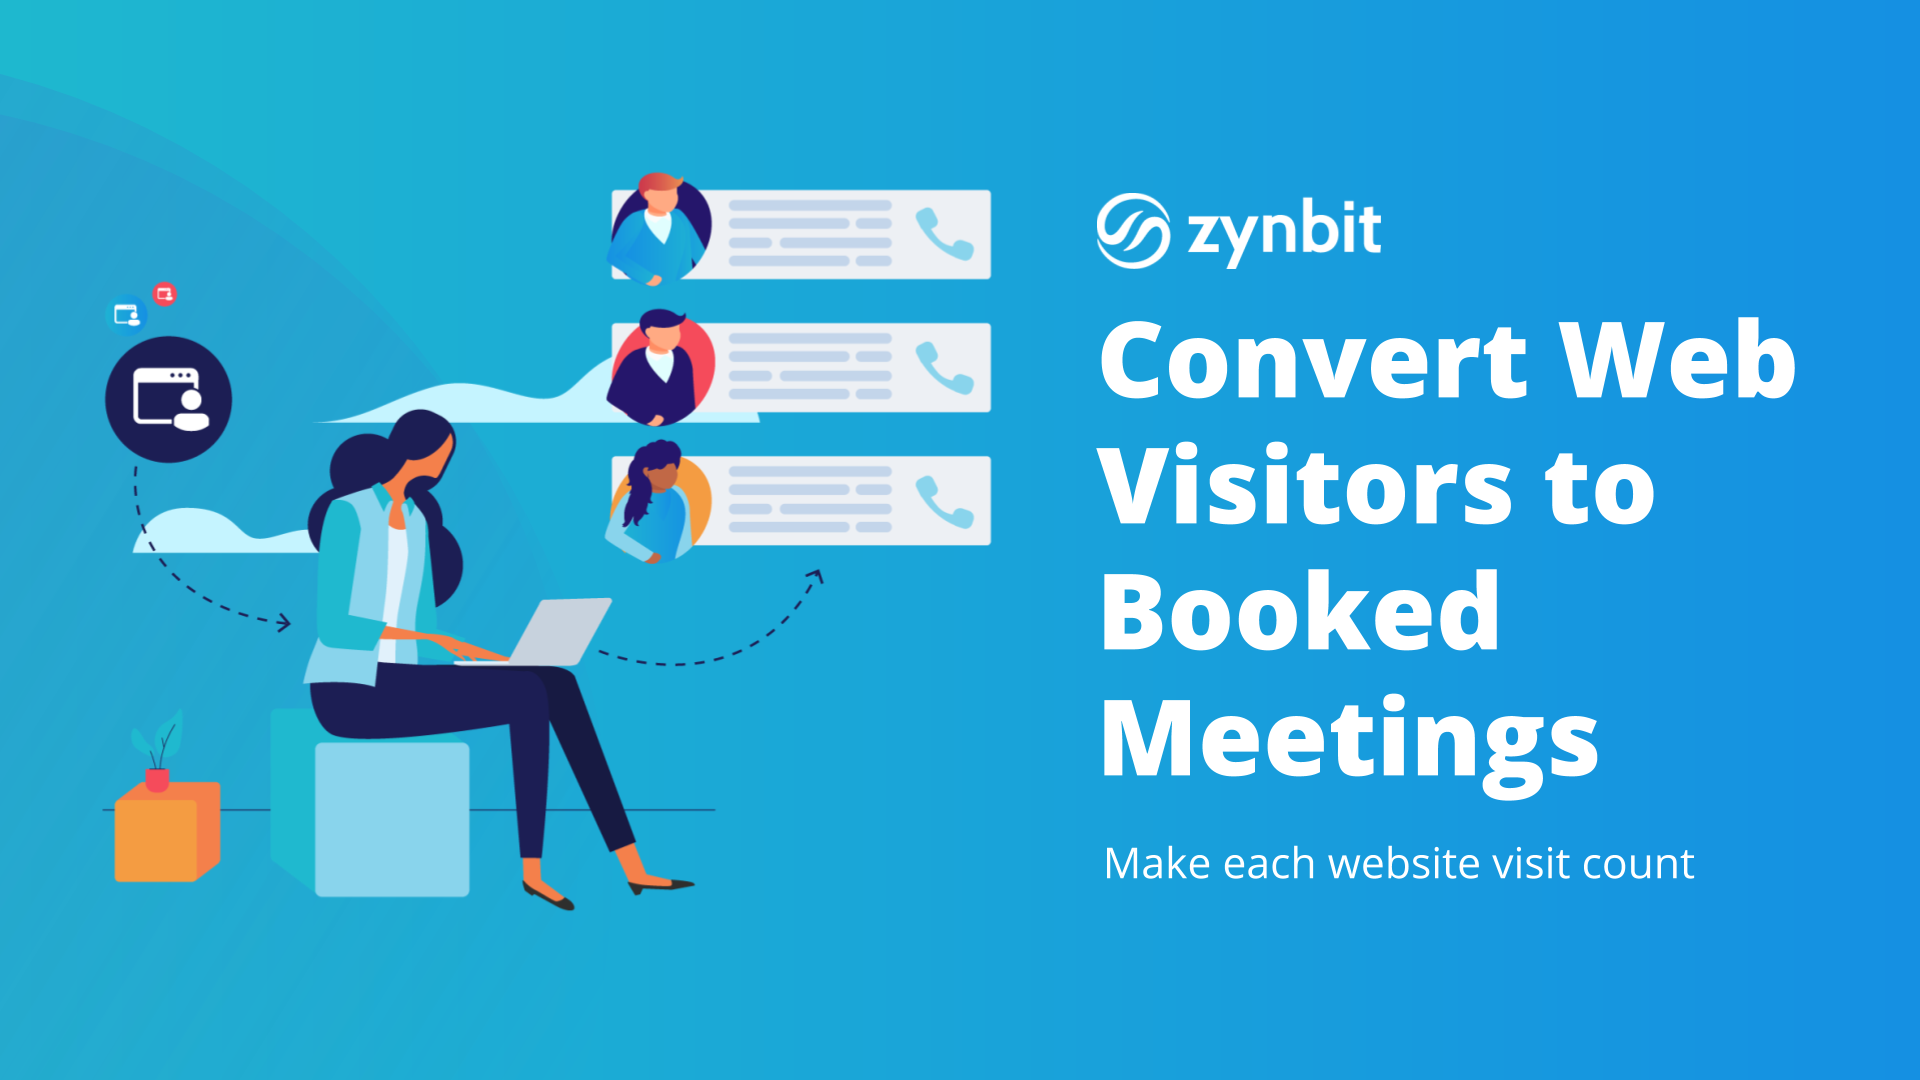 Convert Web Visitors to Booked Meetings